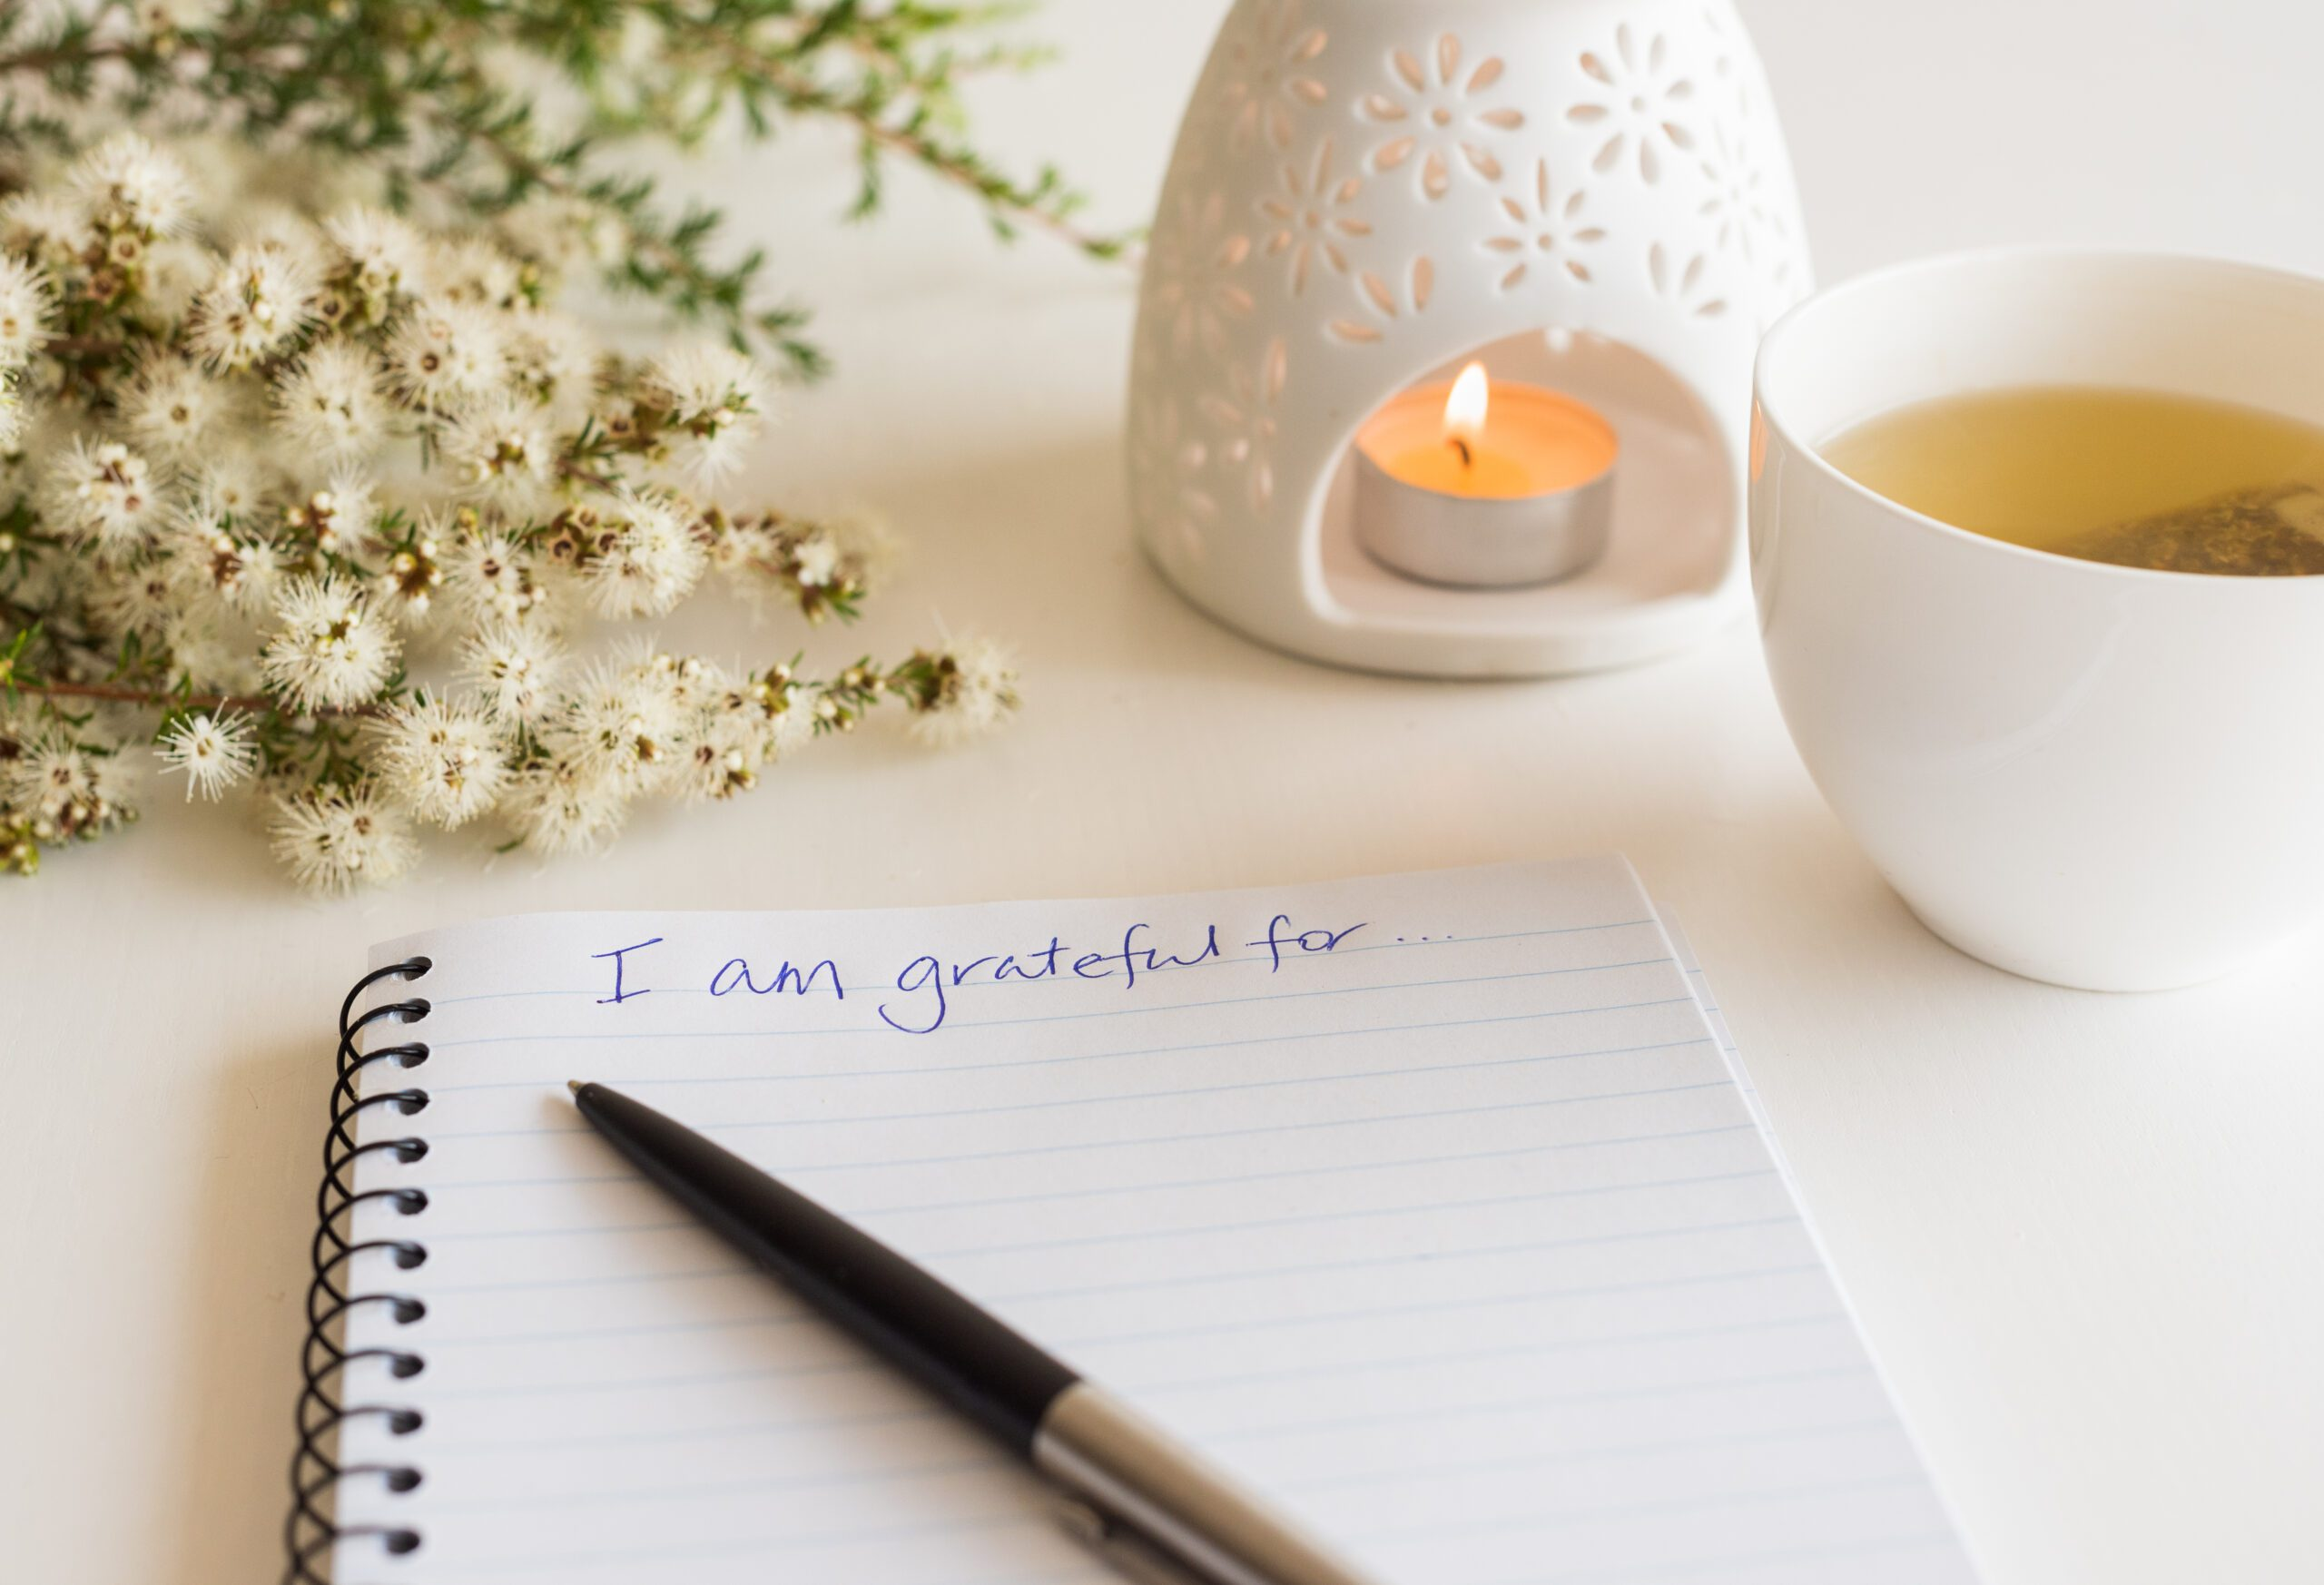 """Notebook with """"I am grateful for"""" in handwritten text"""